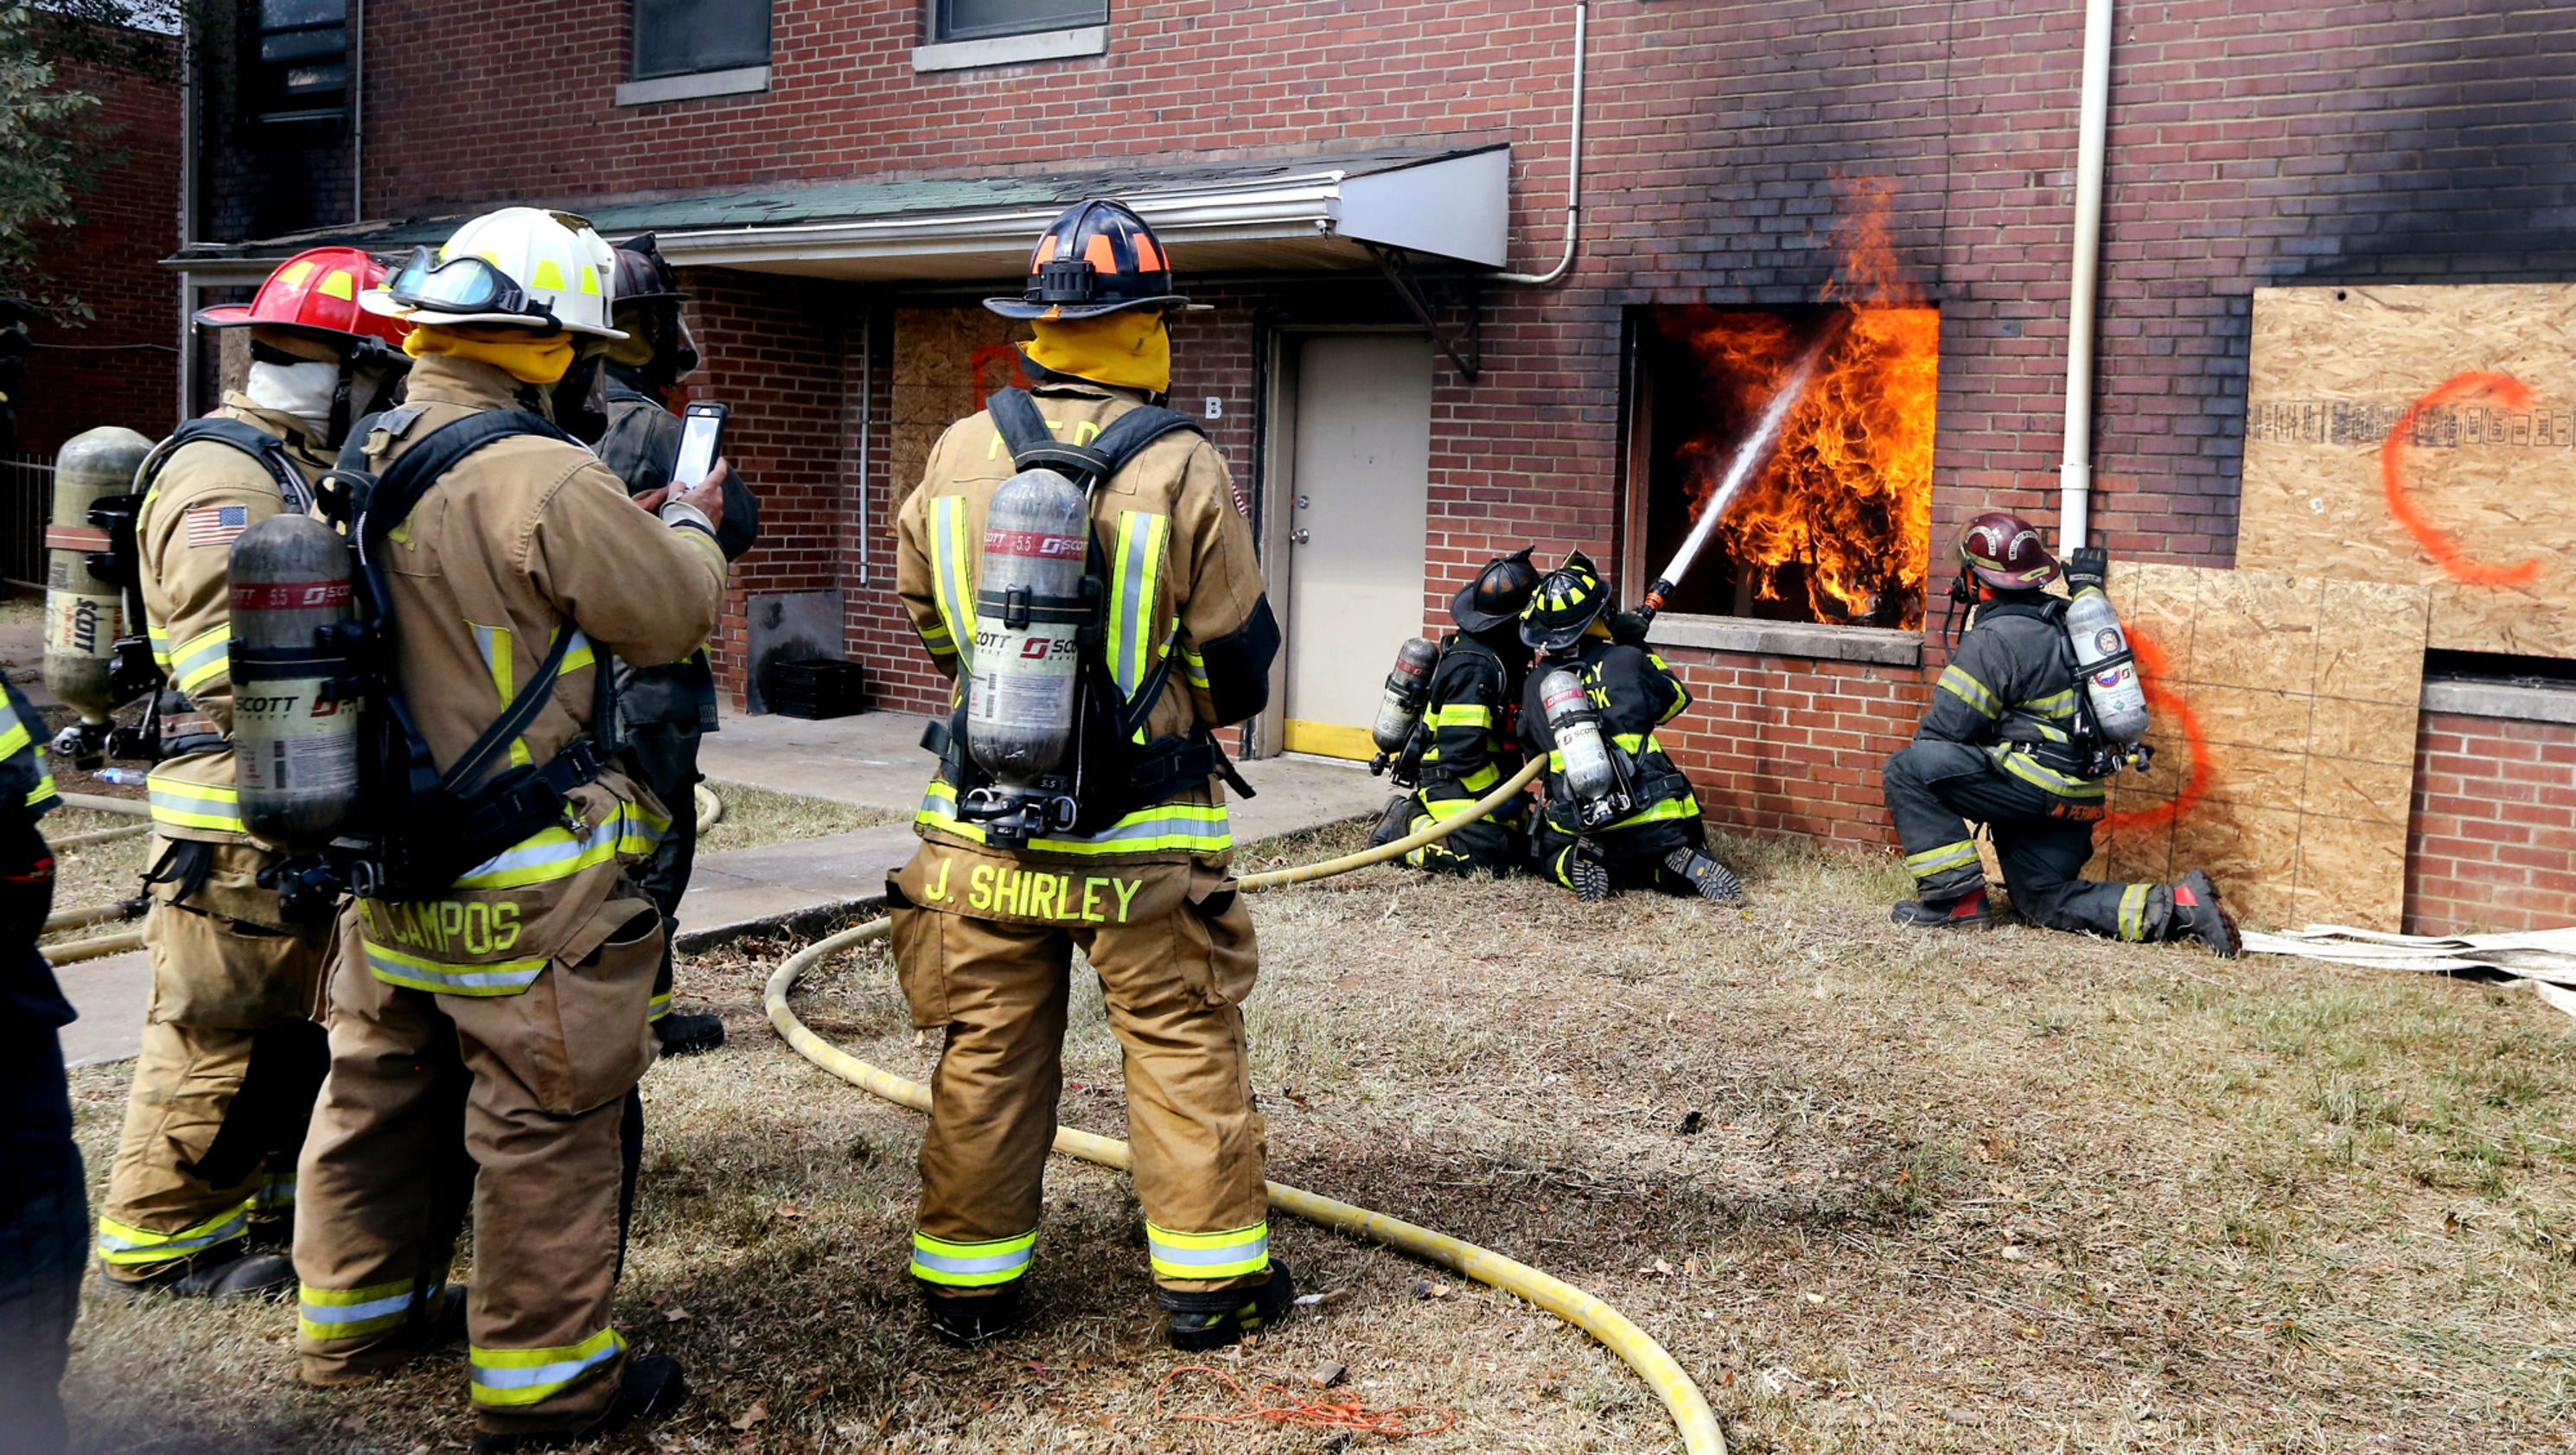 firefighter training at former franklin heights complex